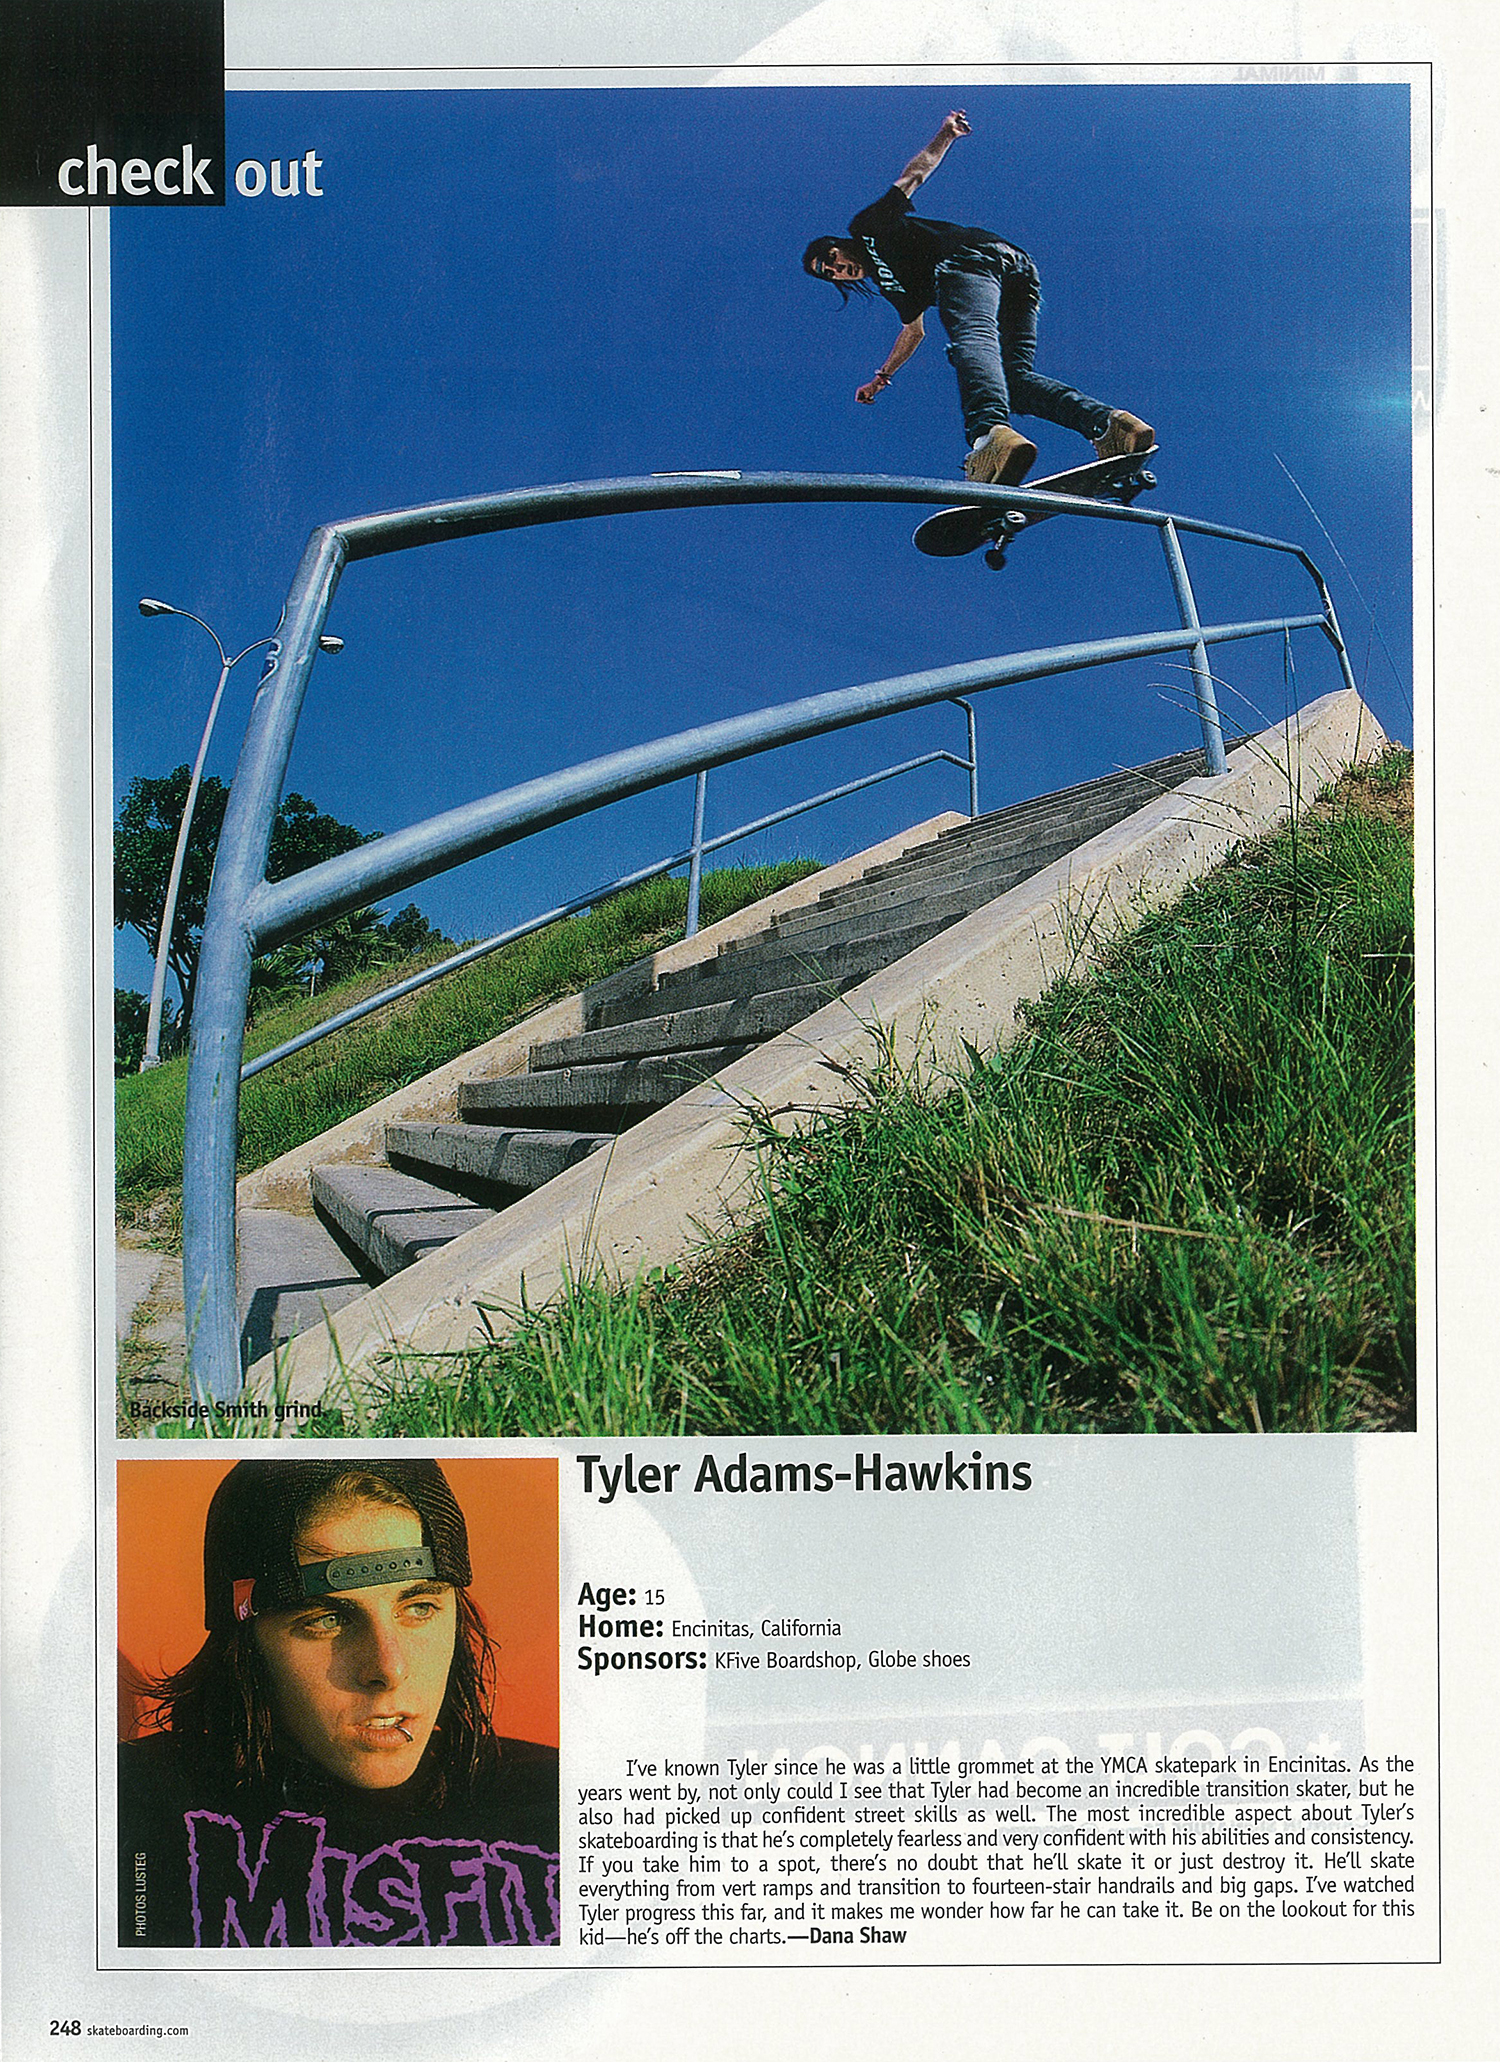 02_tyler_hawkins_tws_check_out.jpg